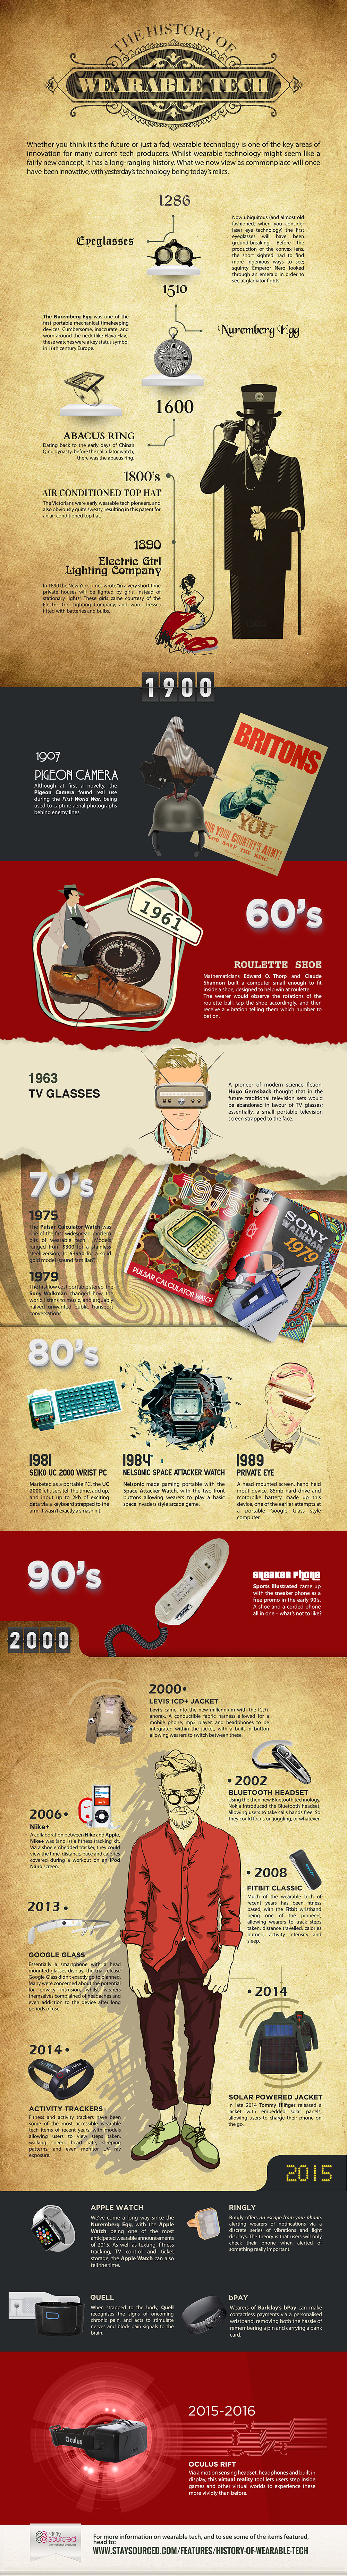 The History of Wearable Technology